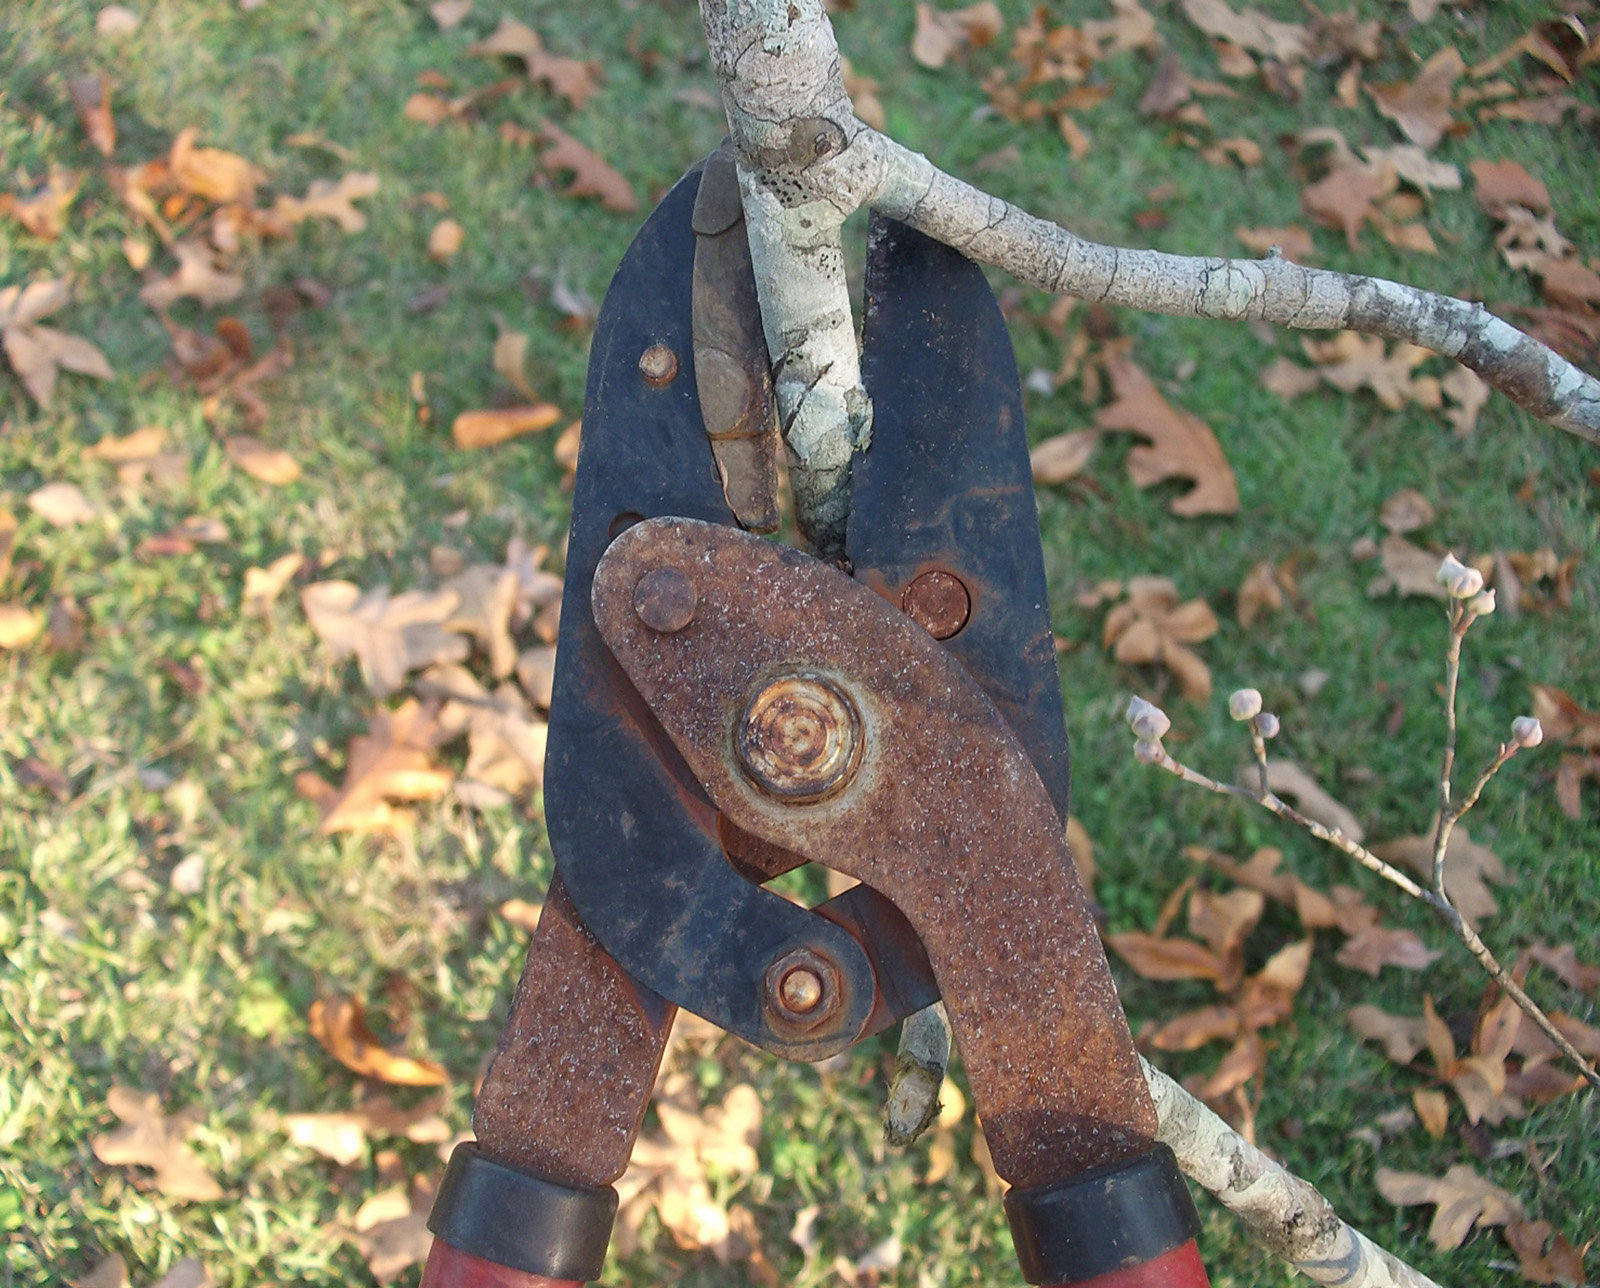 January is a great time to check trees and shrubs to see which need to be pruned and to plan a pruning strategy.